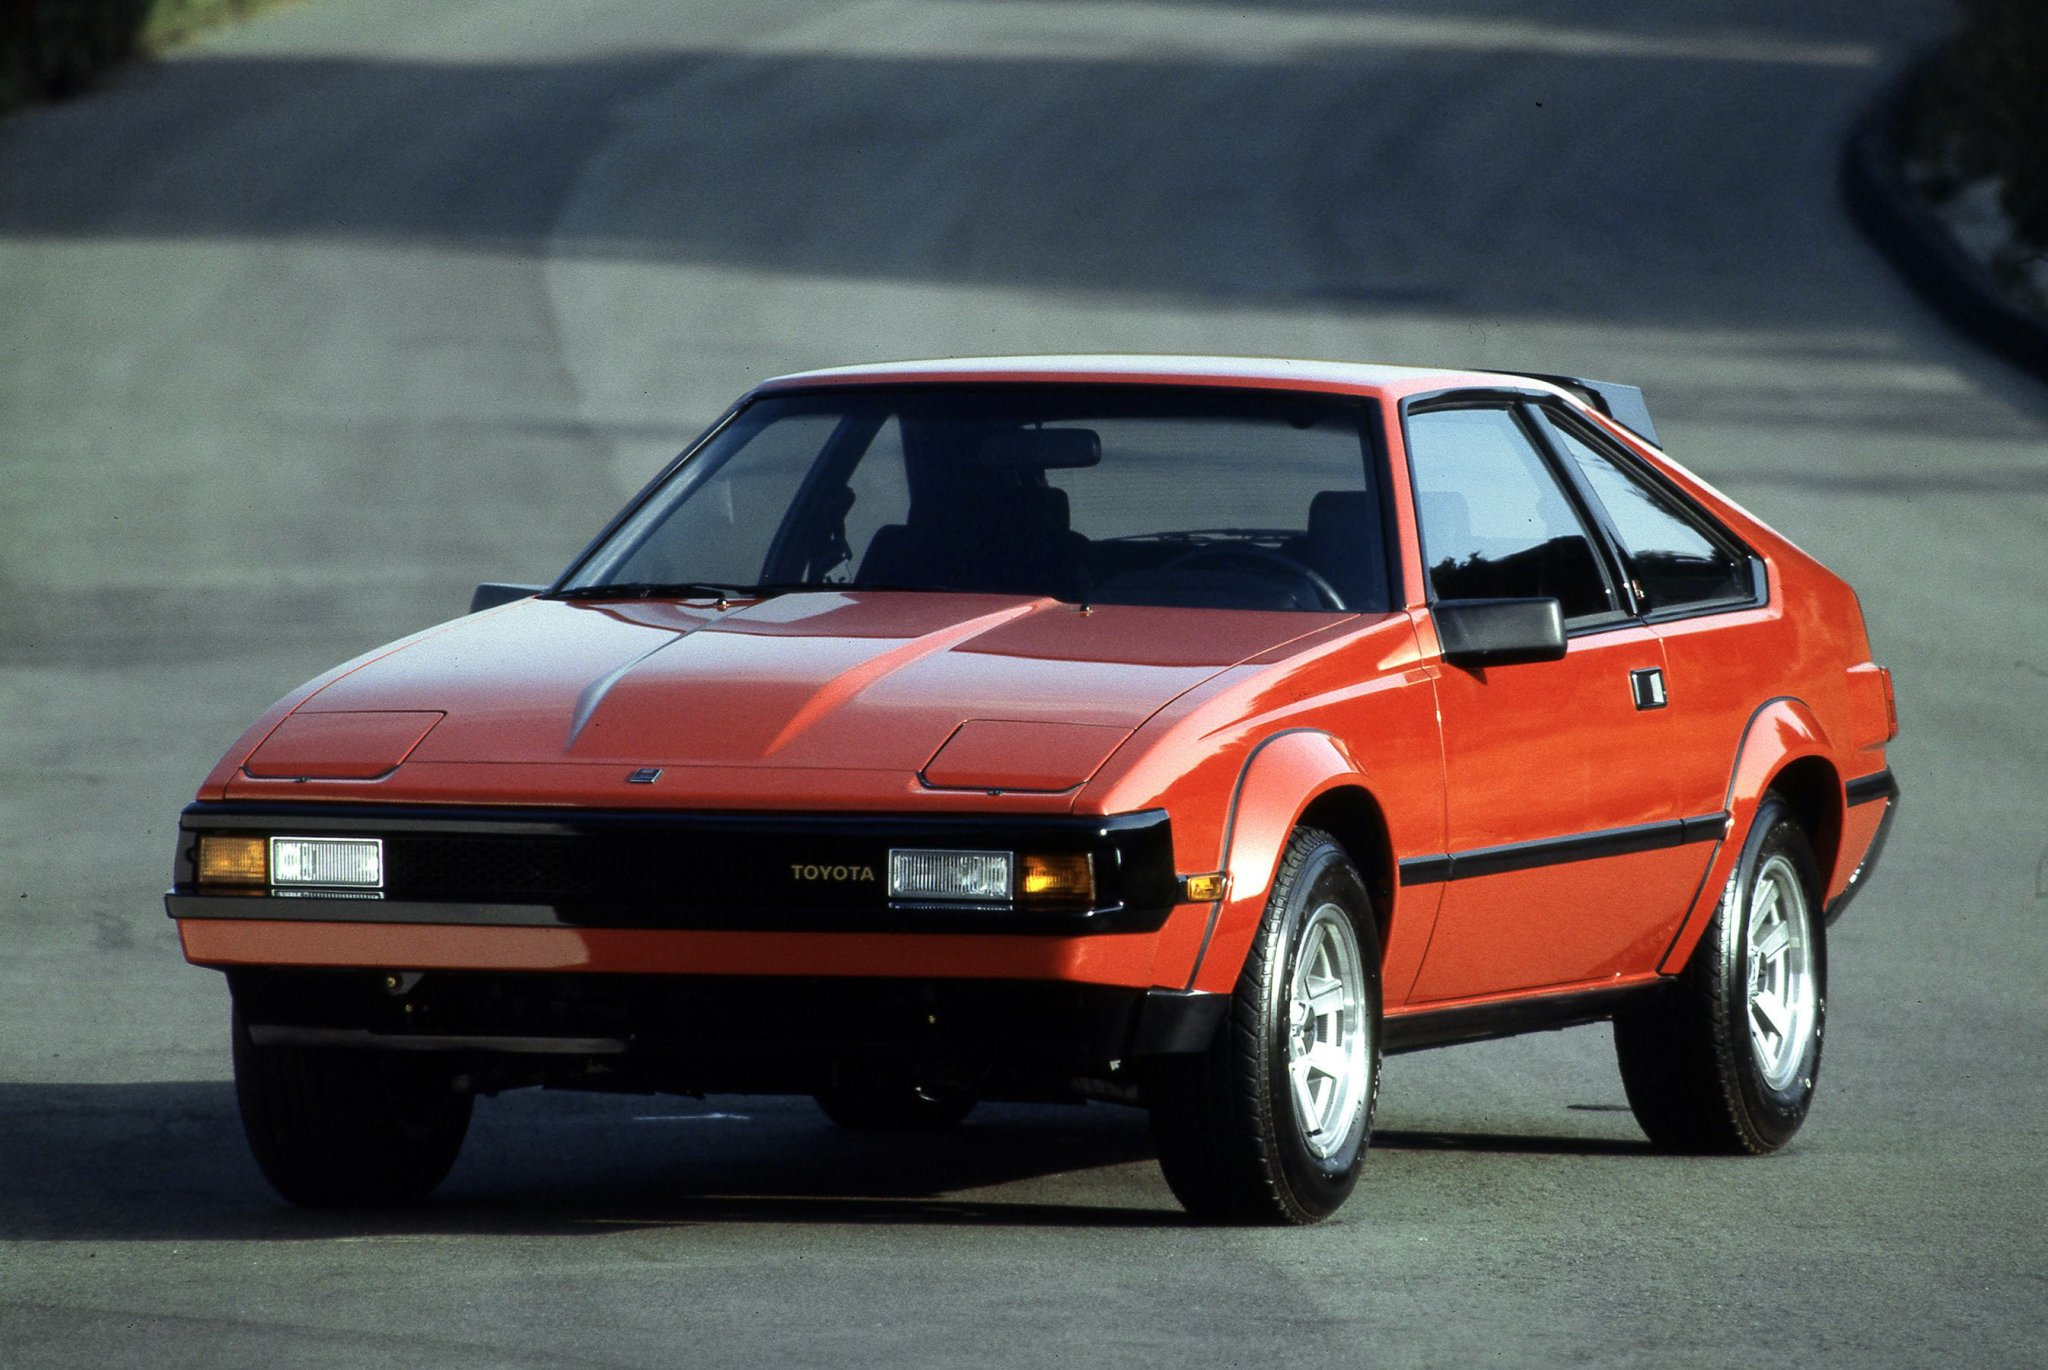 Here's What A 1980s Toyota Celica Supra Costs Today